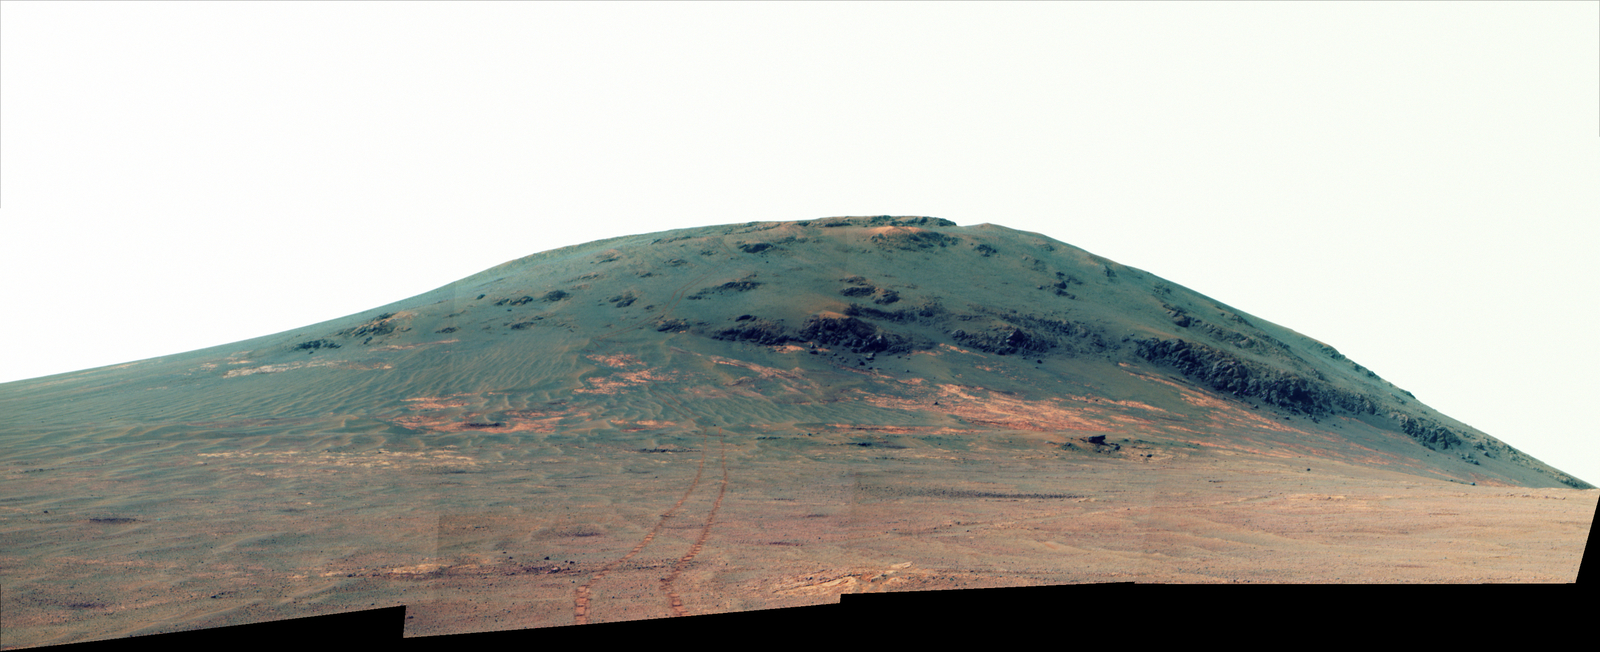 "Wheel tracks from NASA's Mars rover Opportunity descending and departing the ""Cape Tribulation"" segment of Endeavour Crater's rim are visible in this April 21, 2017, view from the rover's Pancam. This version is presented in enhanced color to make differences in surface materials more visible."